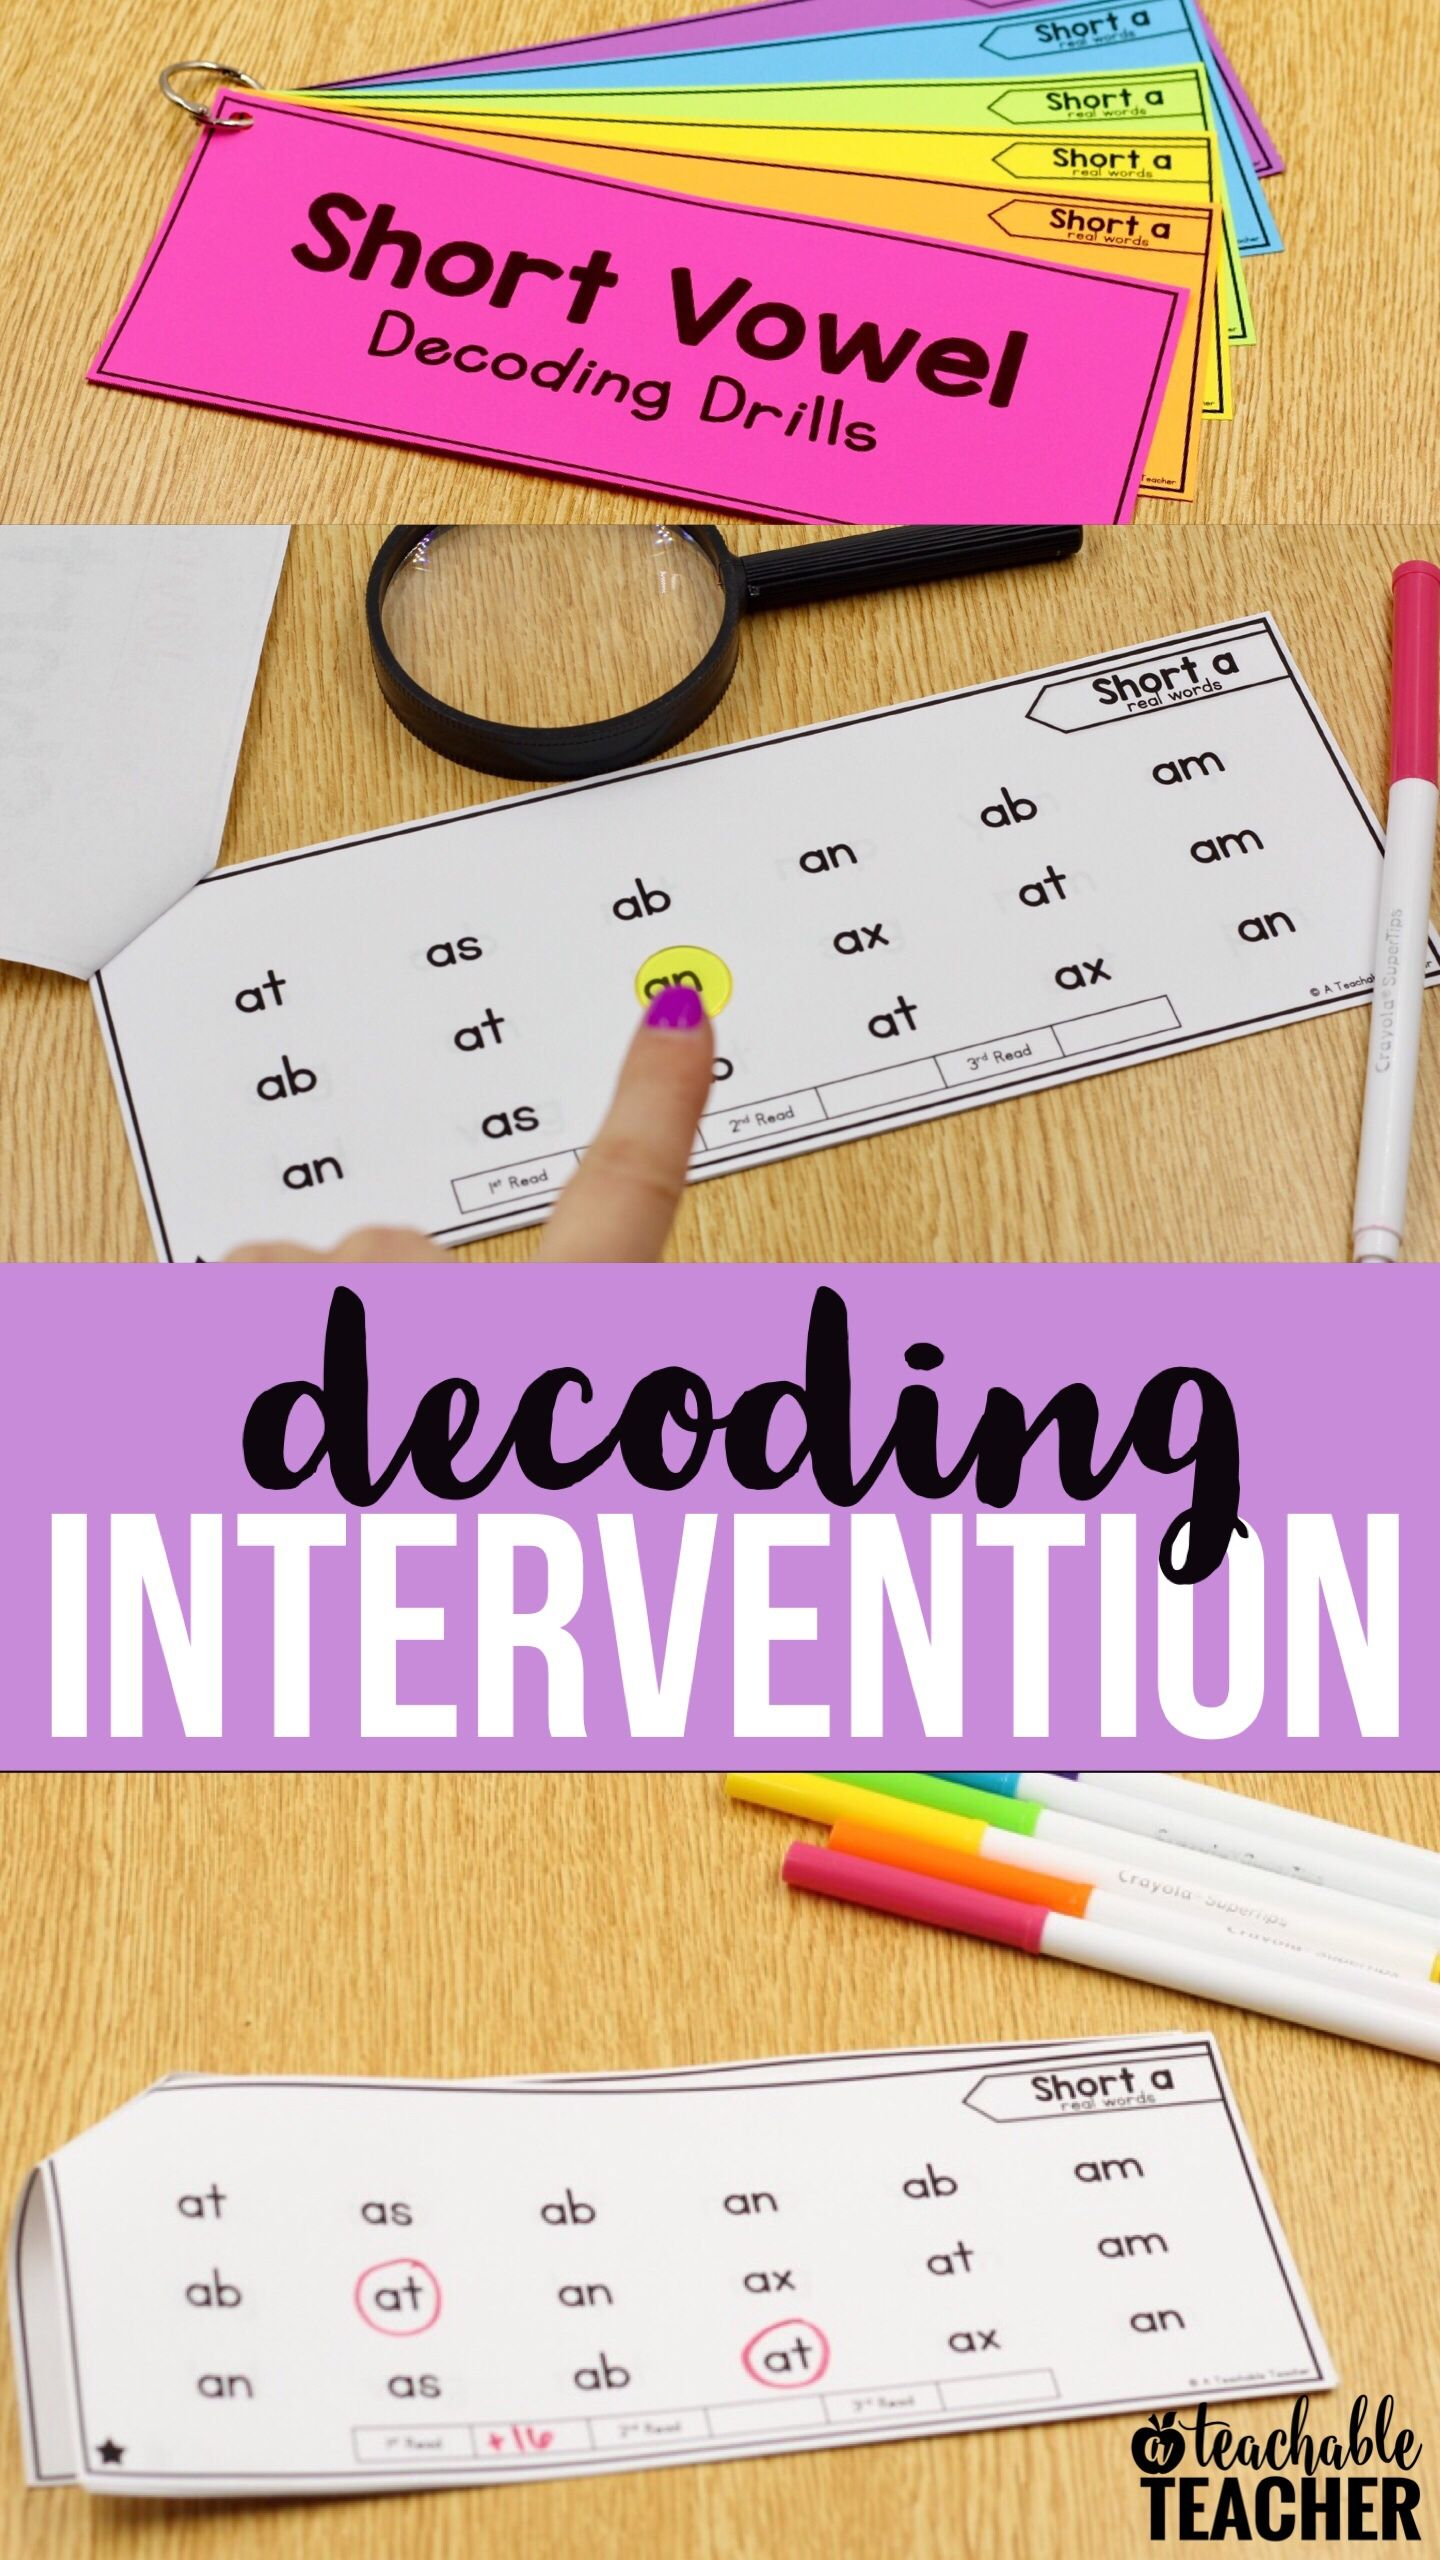 worksheet Decoding Worksheets For Middle School decoding drills for phonics fluency word reading fluency